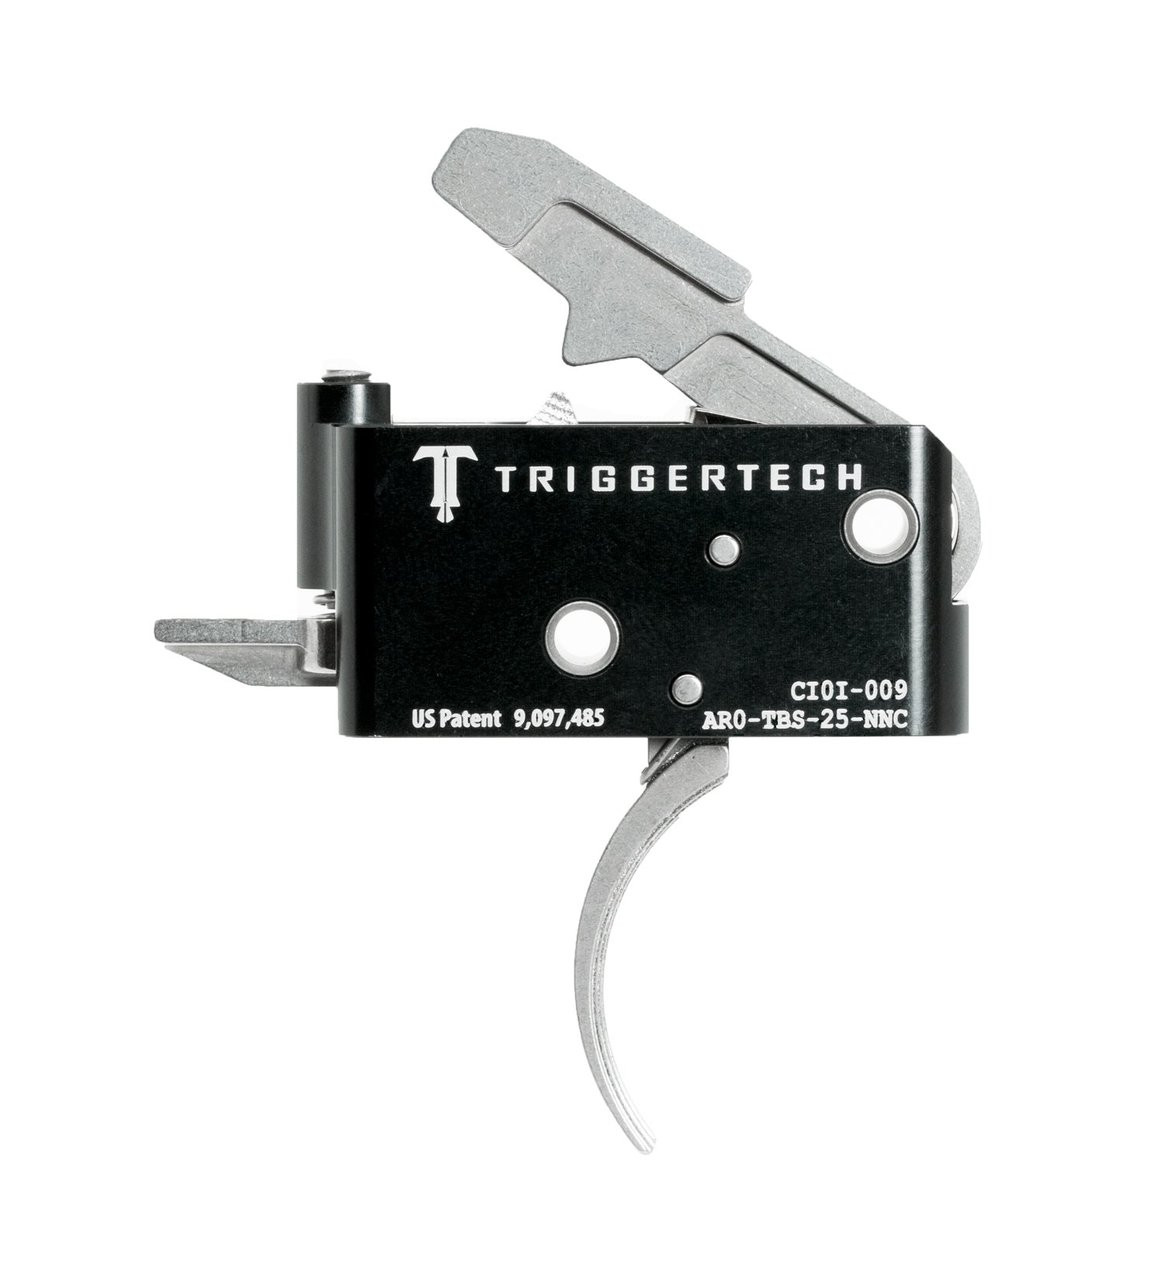 TriggerTech Adaptable AR Primary Trigger